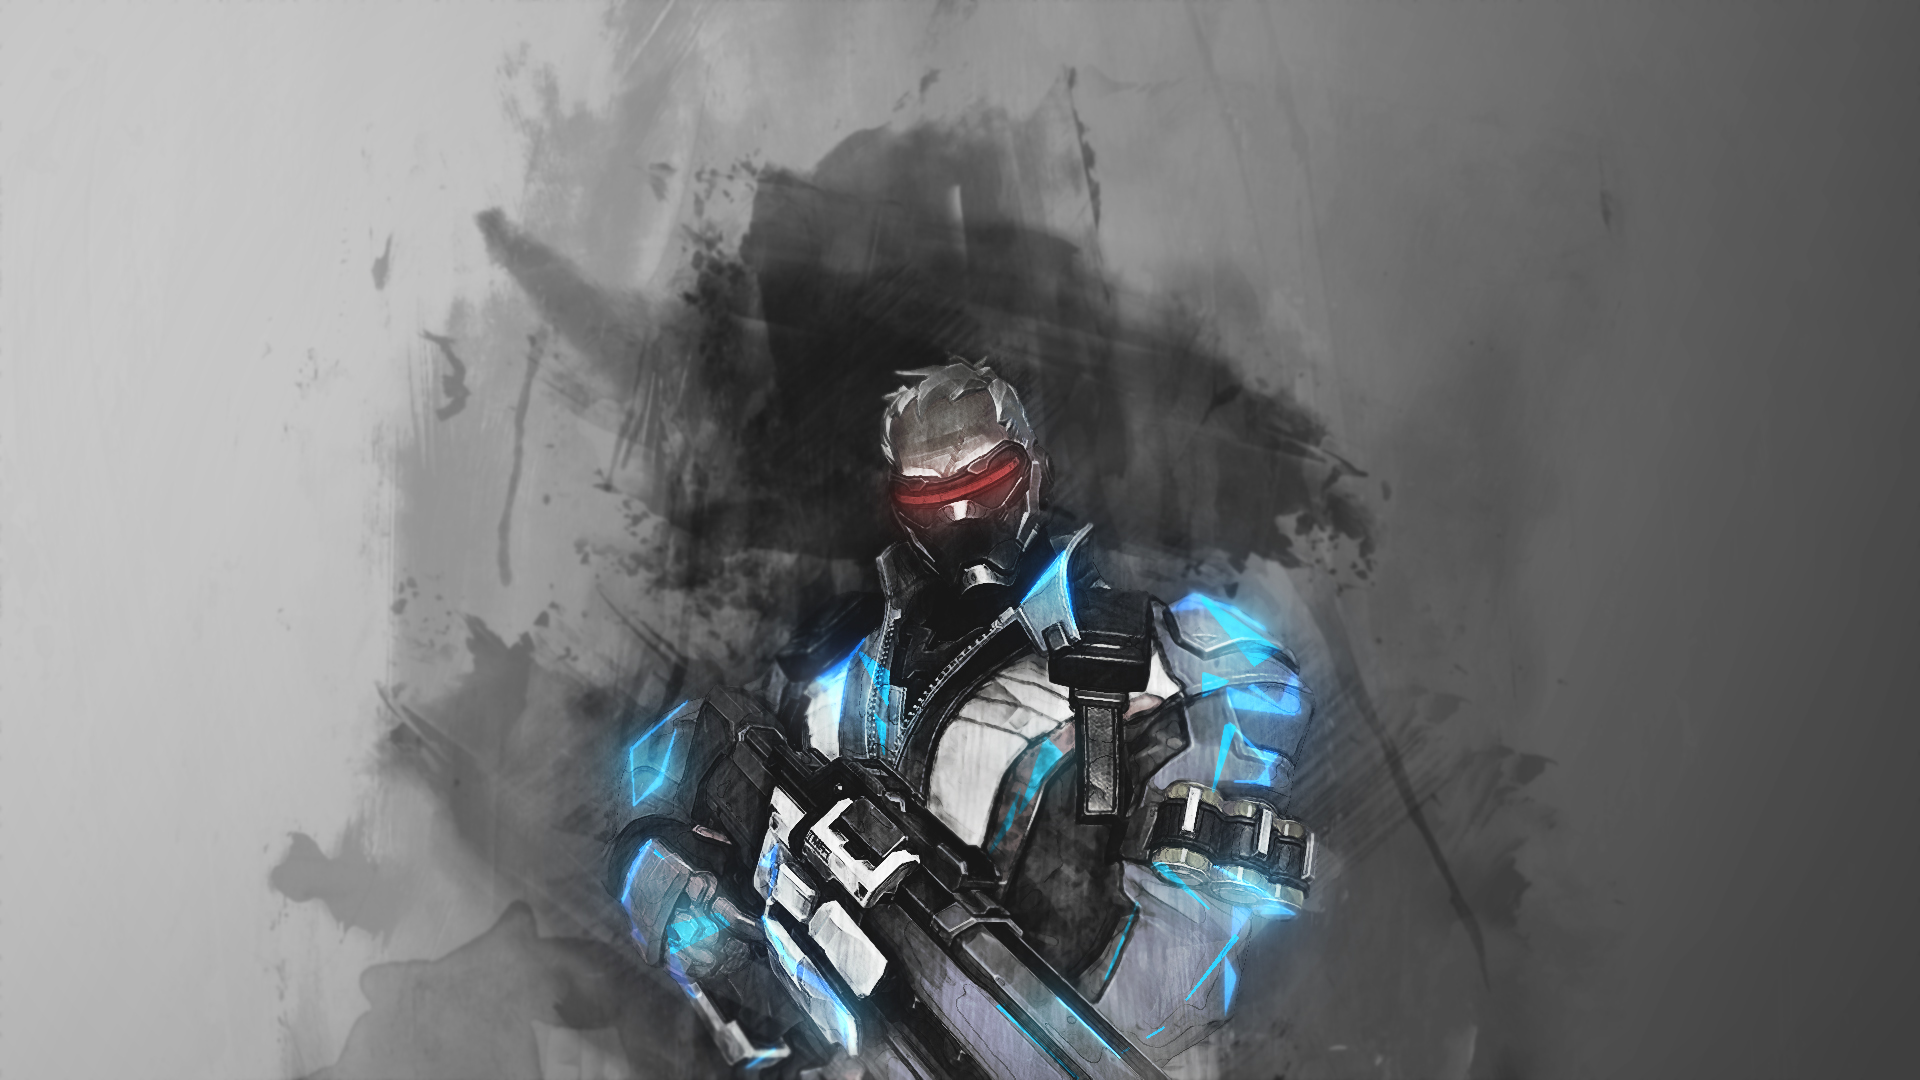 Soldier 76 Overwatch Wallpaper 670122472 as well Kam Chancellor Wallpaper in addition 26766 Boeing Plane Airport Band Wing also Lamborghini Logo together with Iphone X Live Wallpapers. on coolest iphone wallpapers